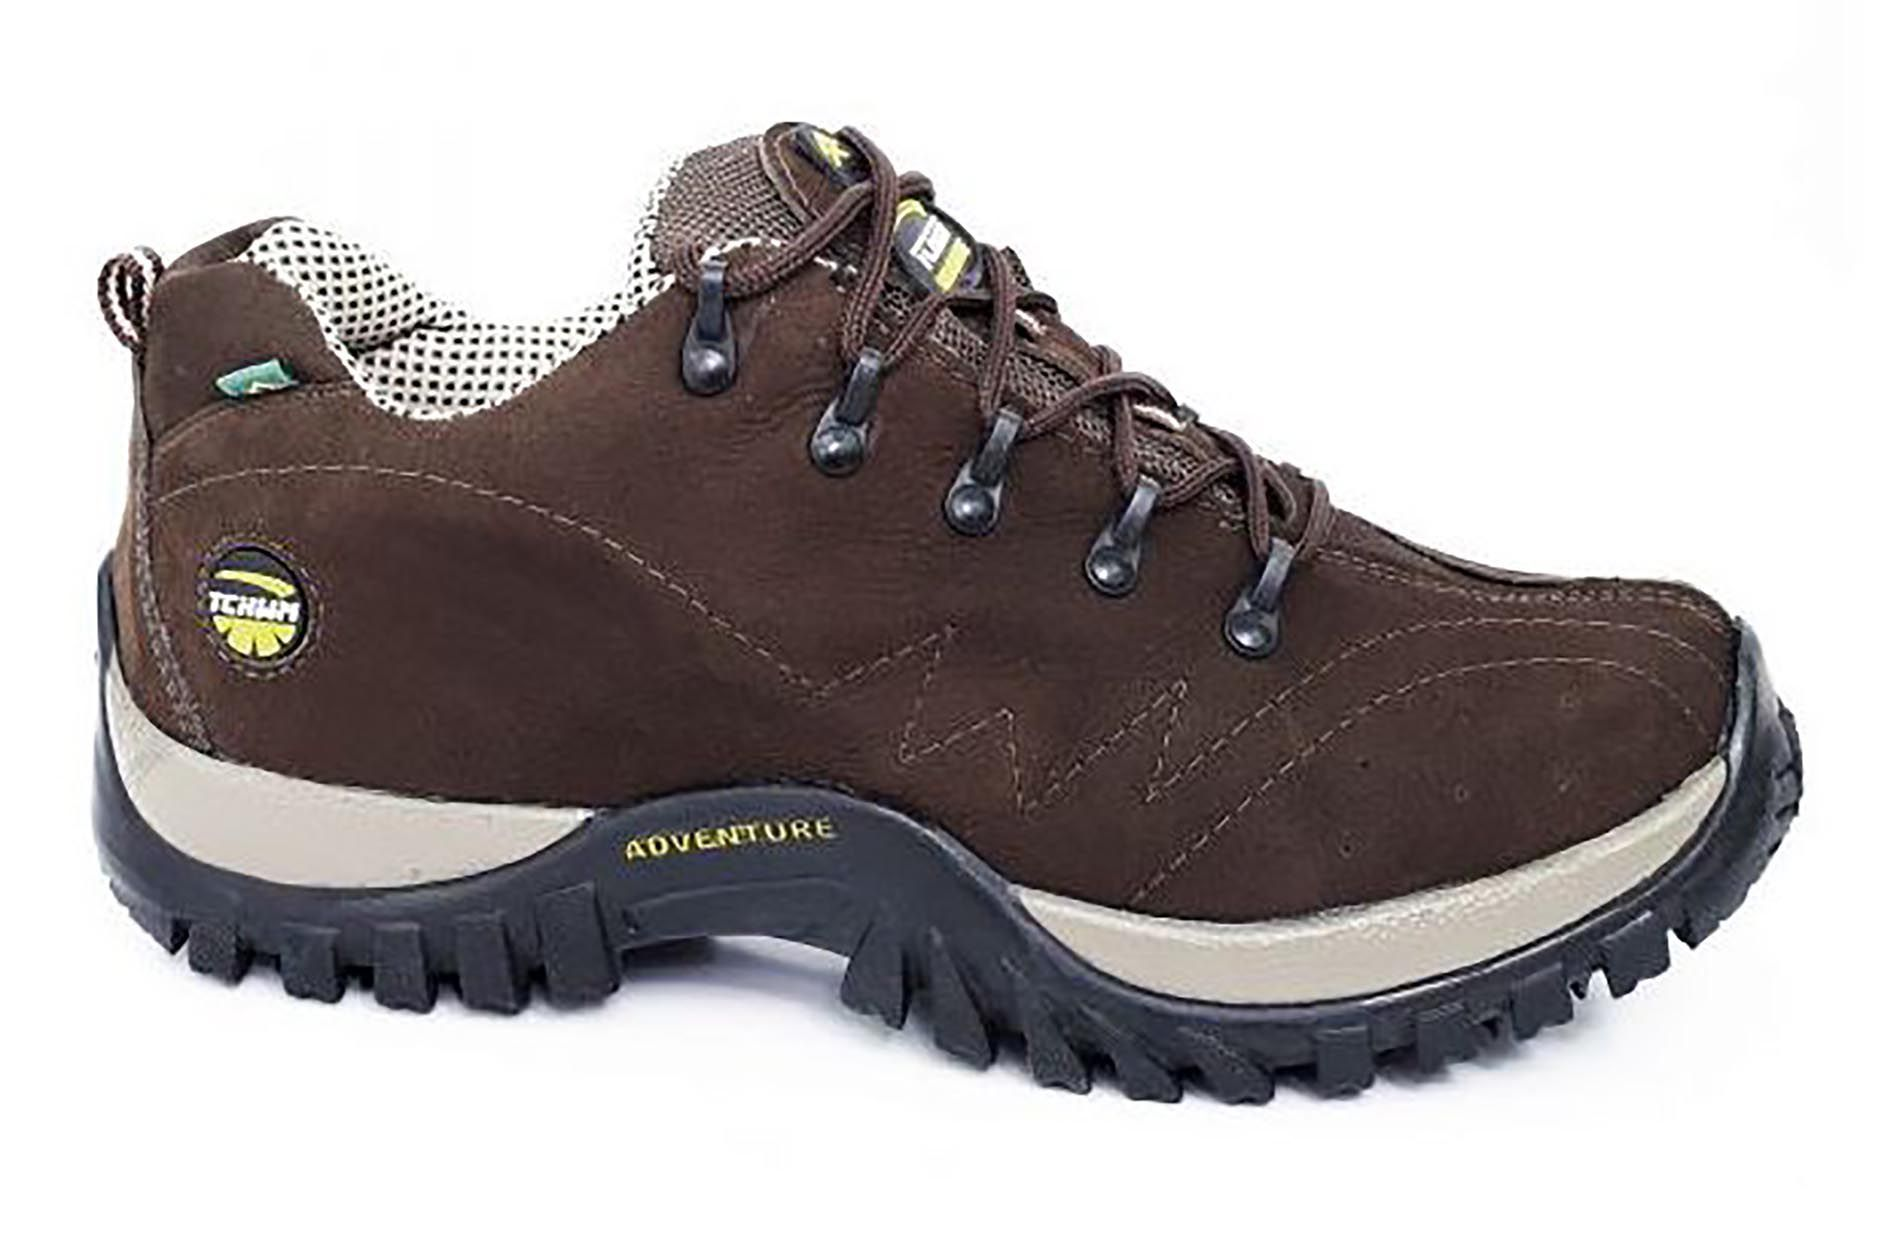 Tênis Adventure Cano Curto Masculino Tchwm Shoes Couro Nobuck - Marrom